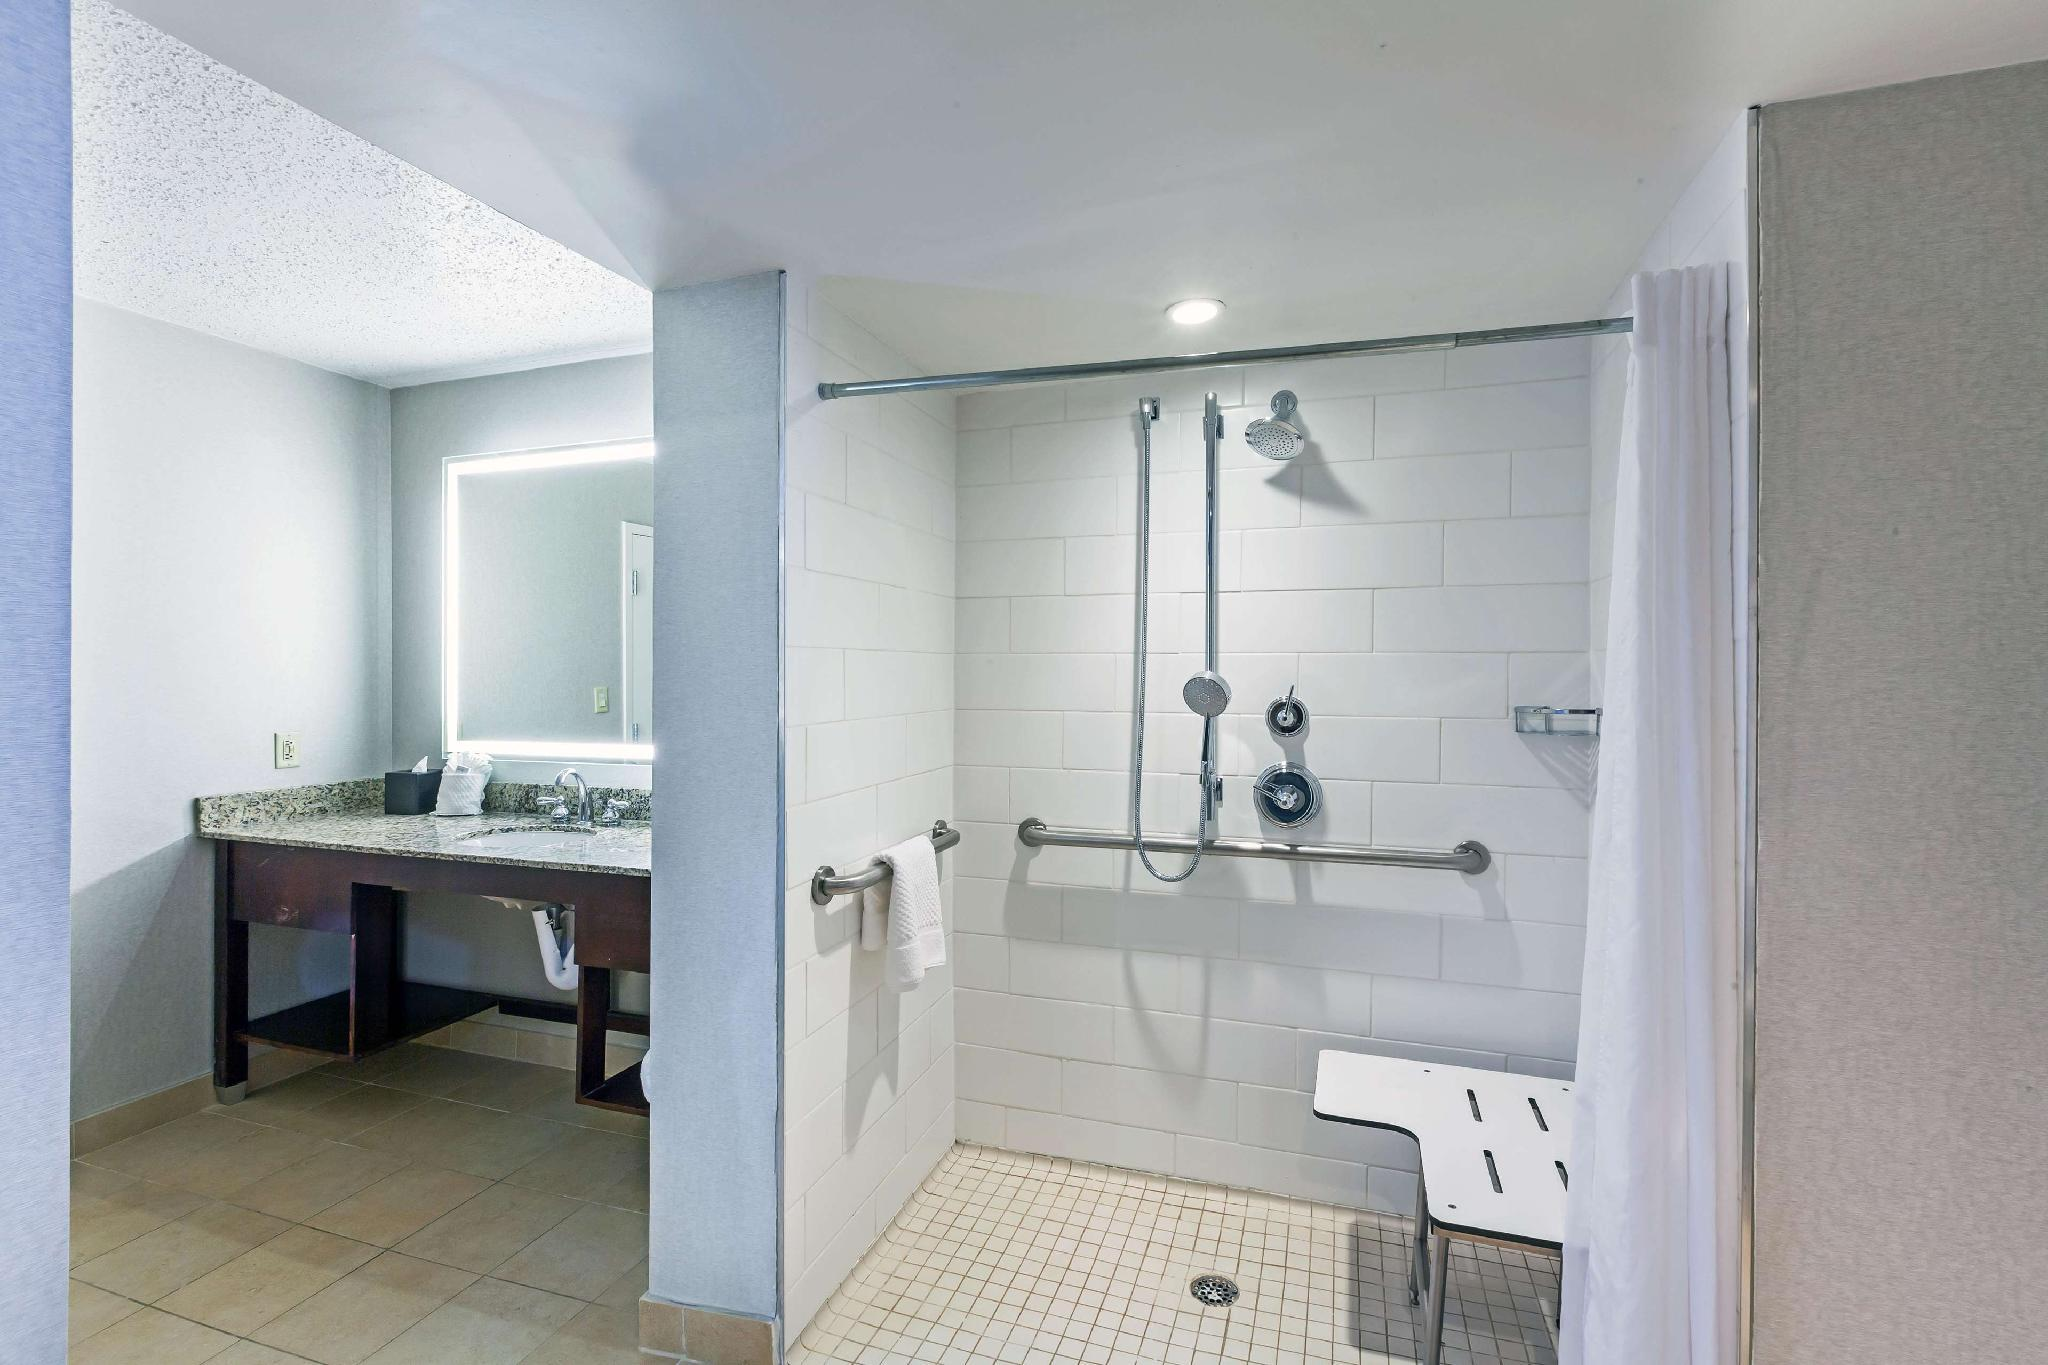 1 King Executive Suite Accessible Roll in Shower Non-Smoking